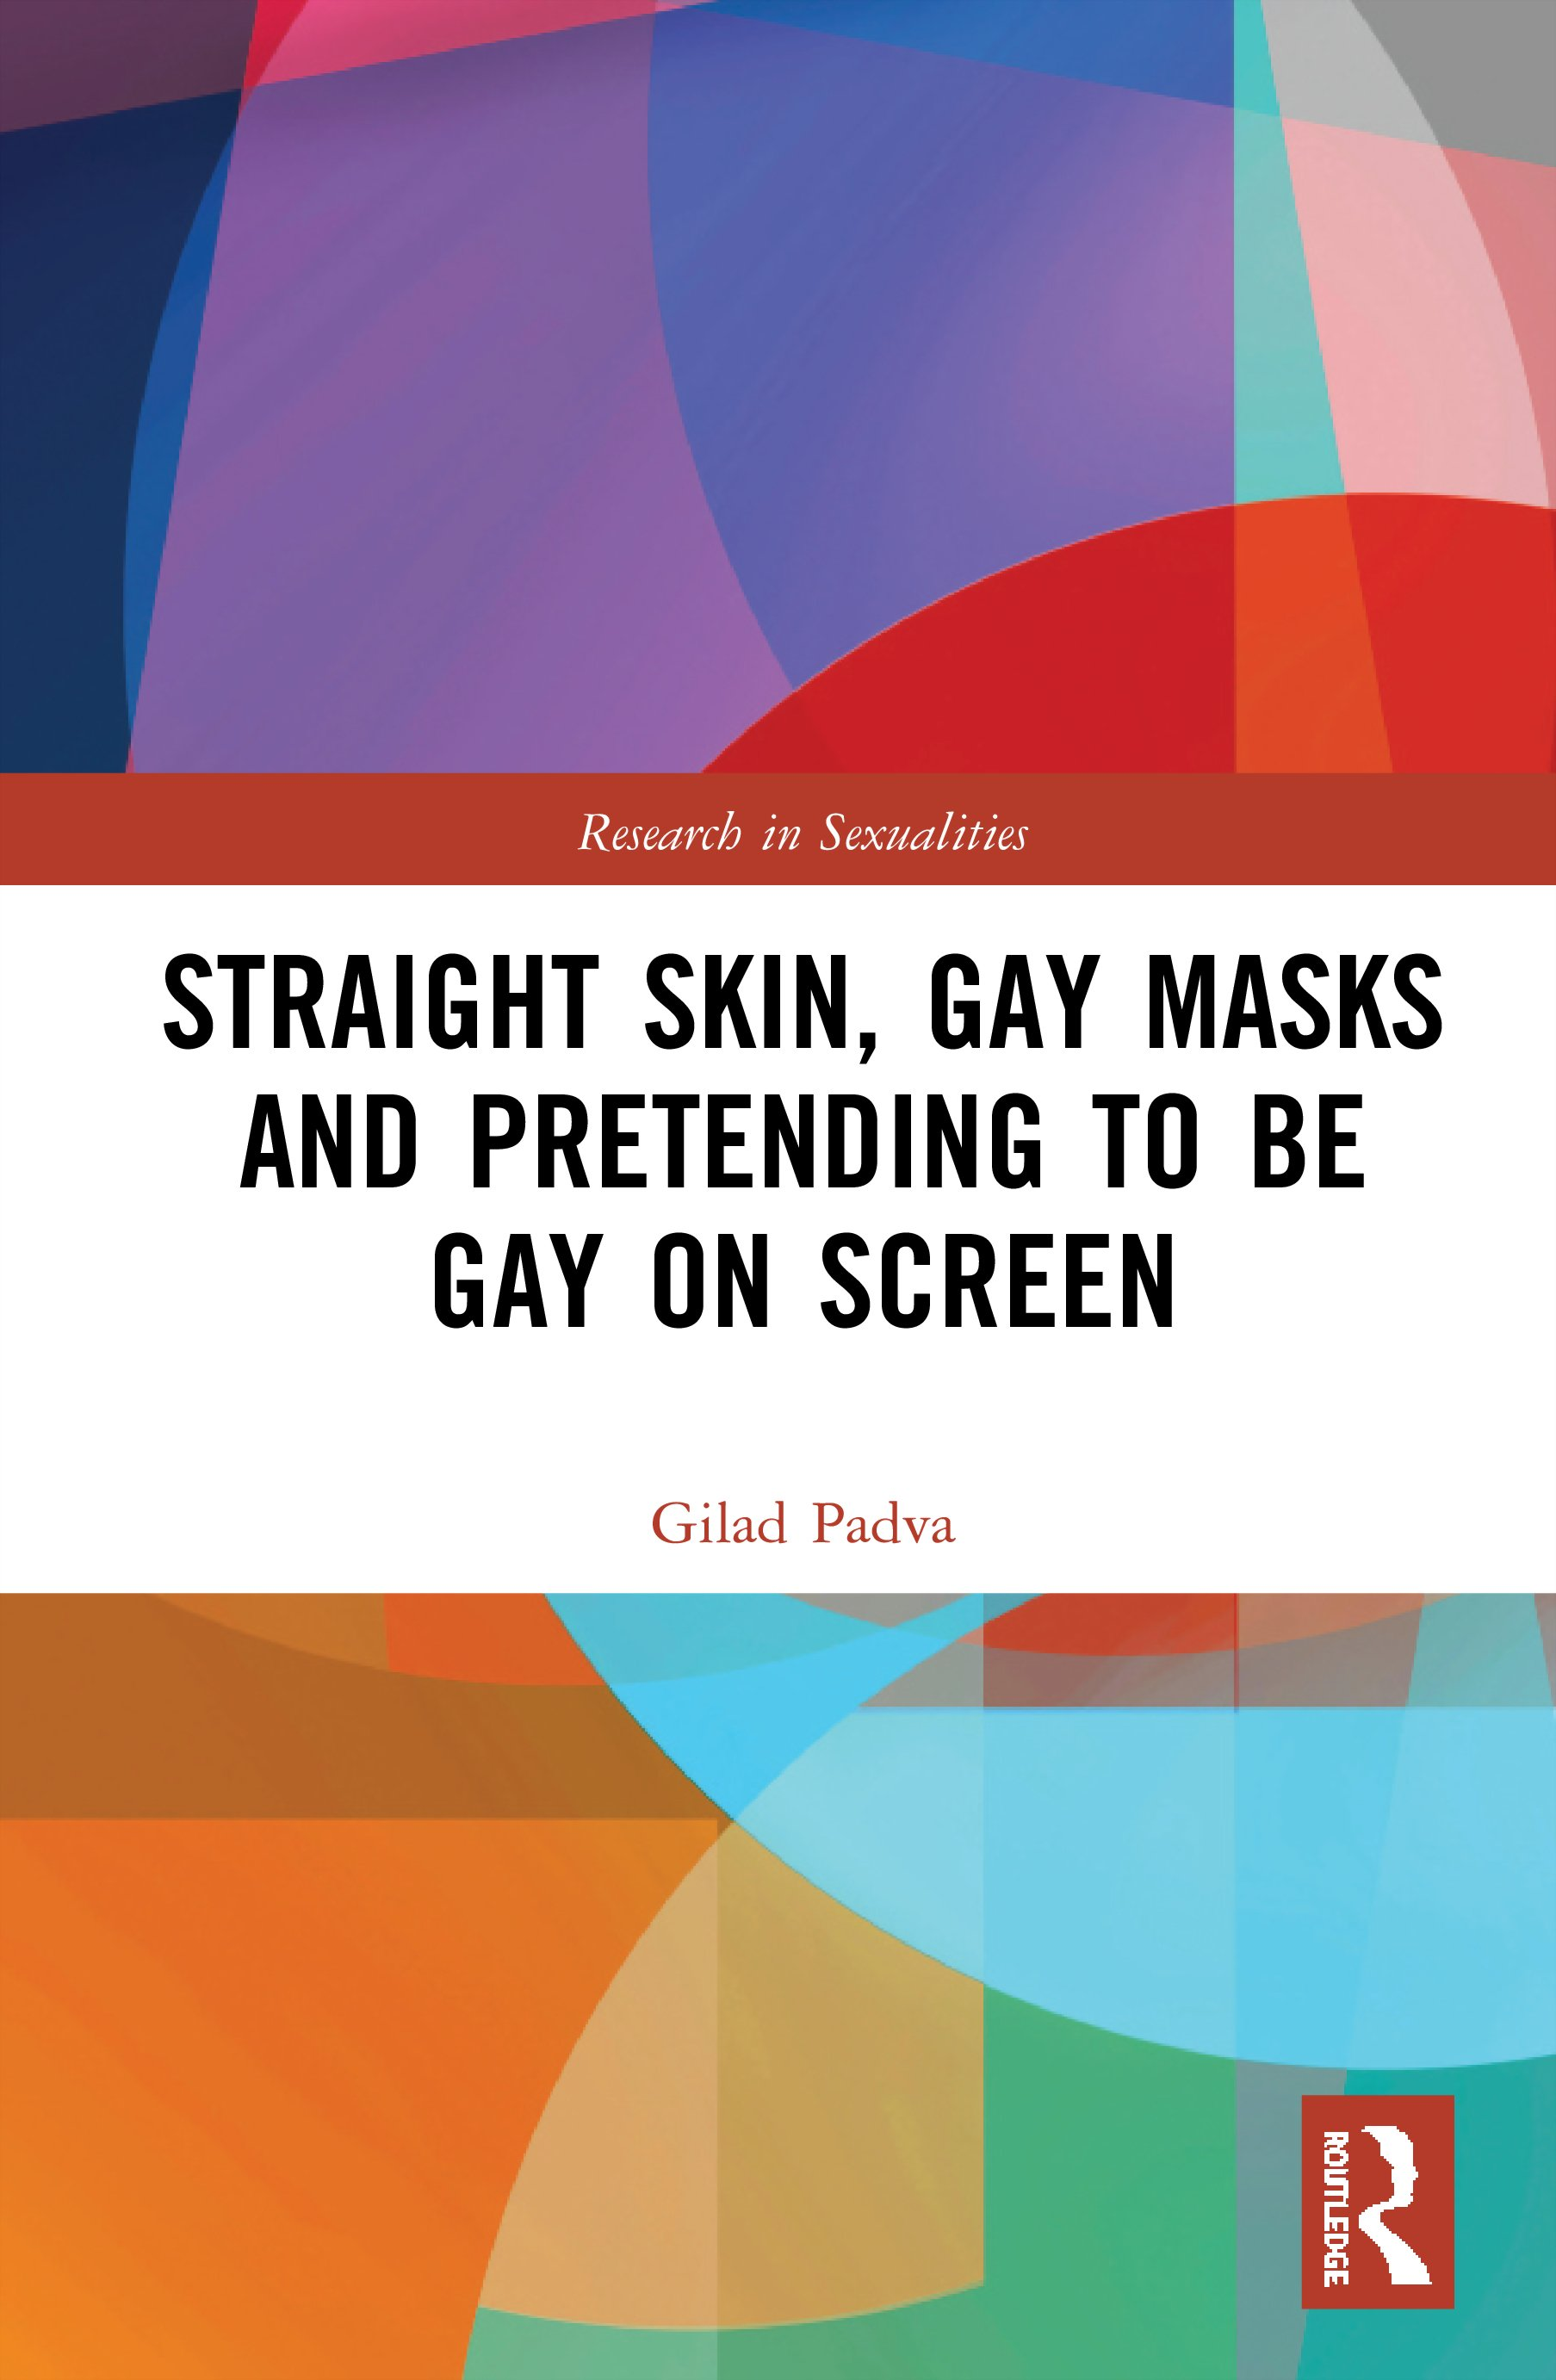 Straight Skin, Gay Masks and Pretending to be Gay on Screen book cover